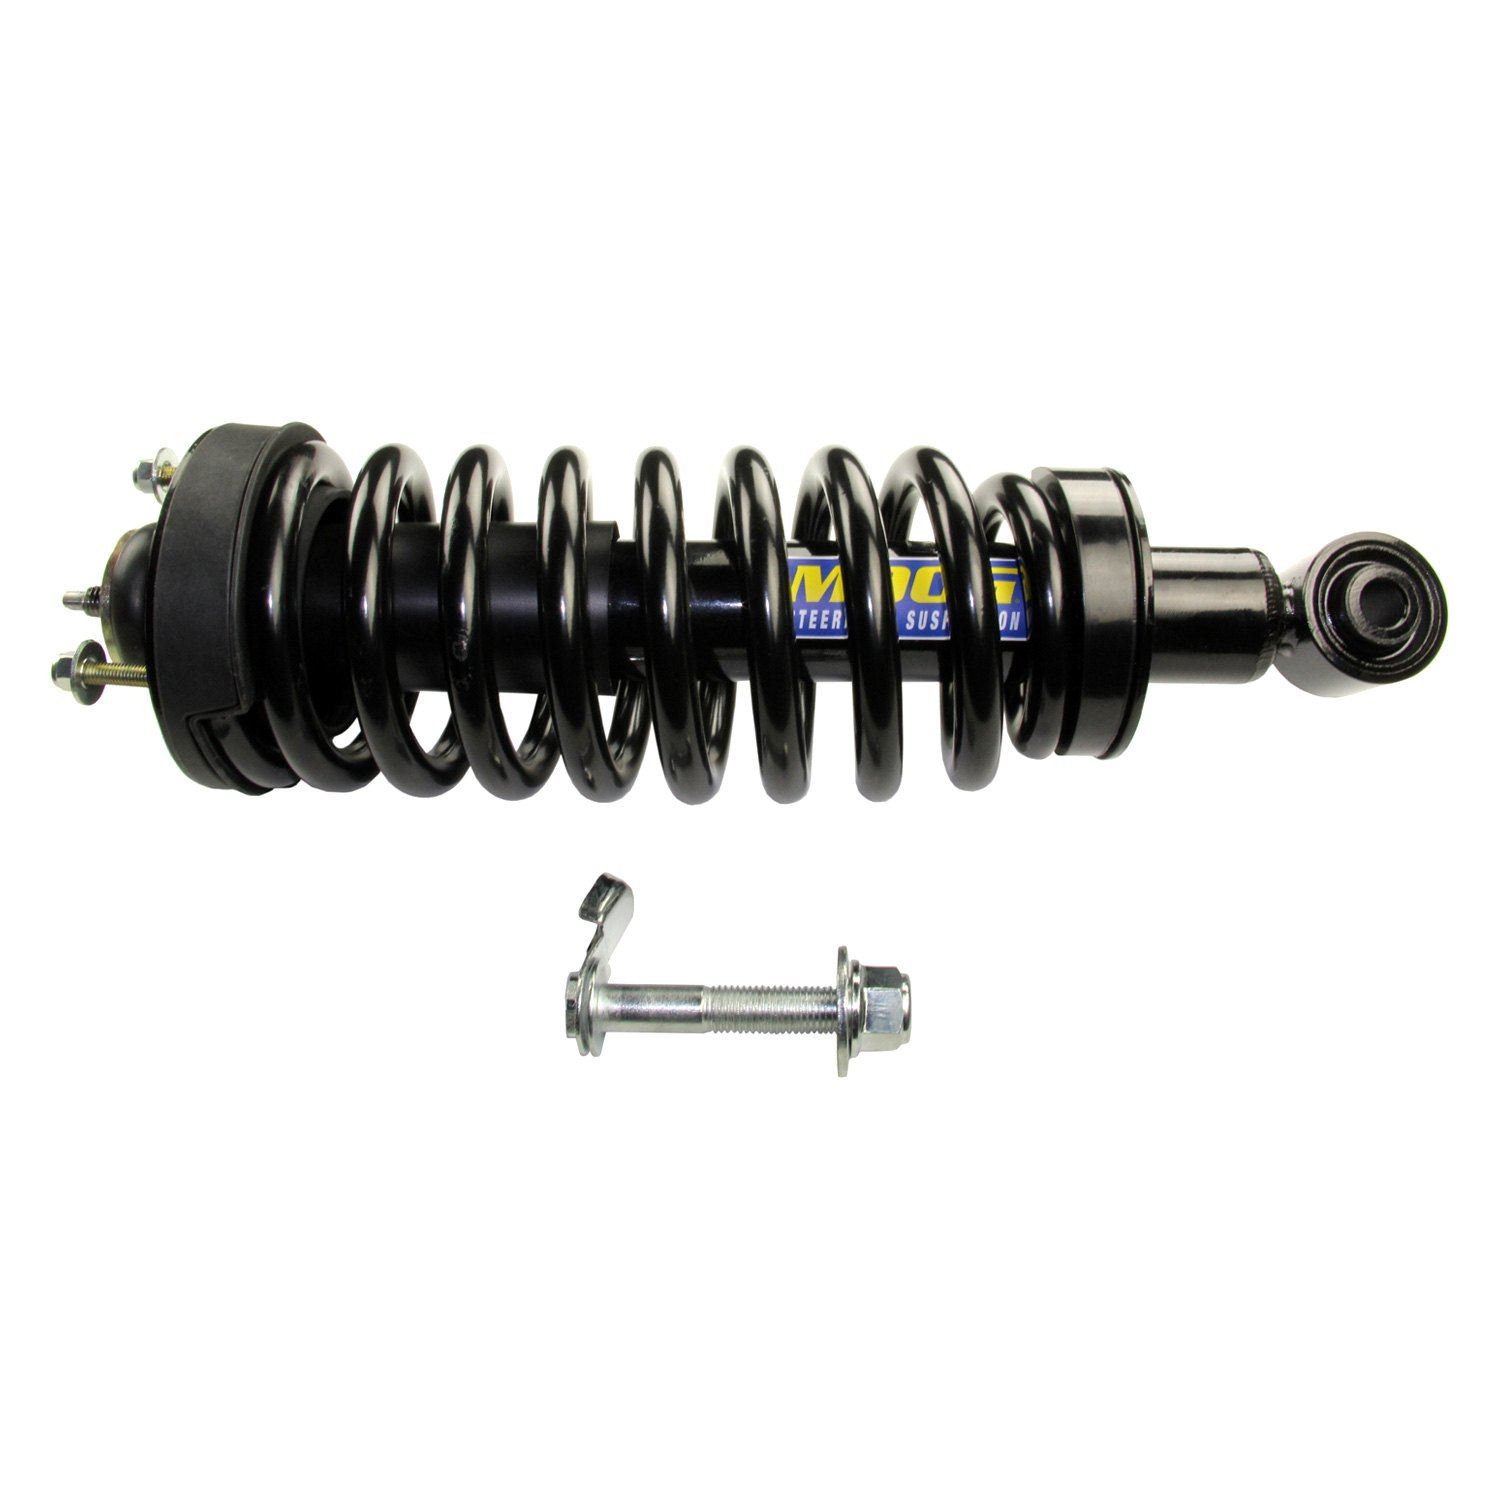 2008 Ford Crown Victoria Exterior: Ford Crown Victoria 2008 Front Complete Strut Assembly